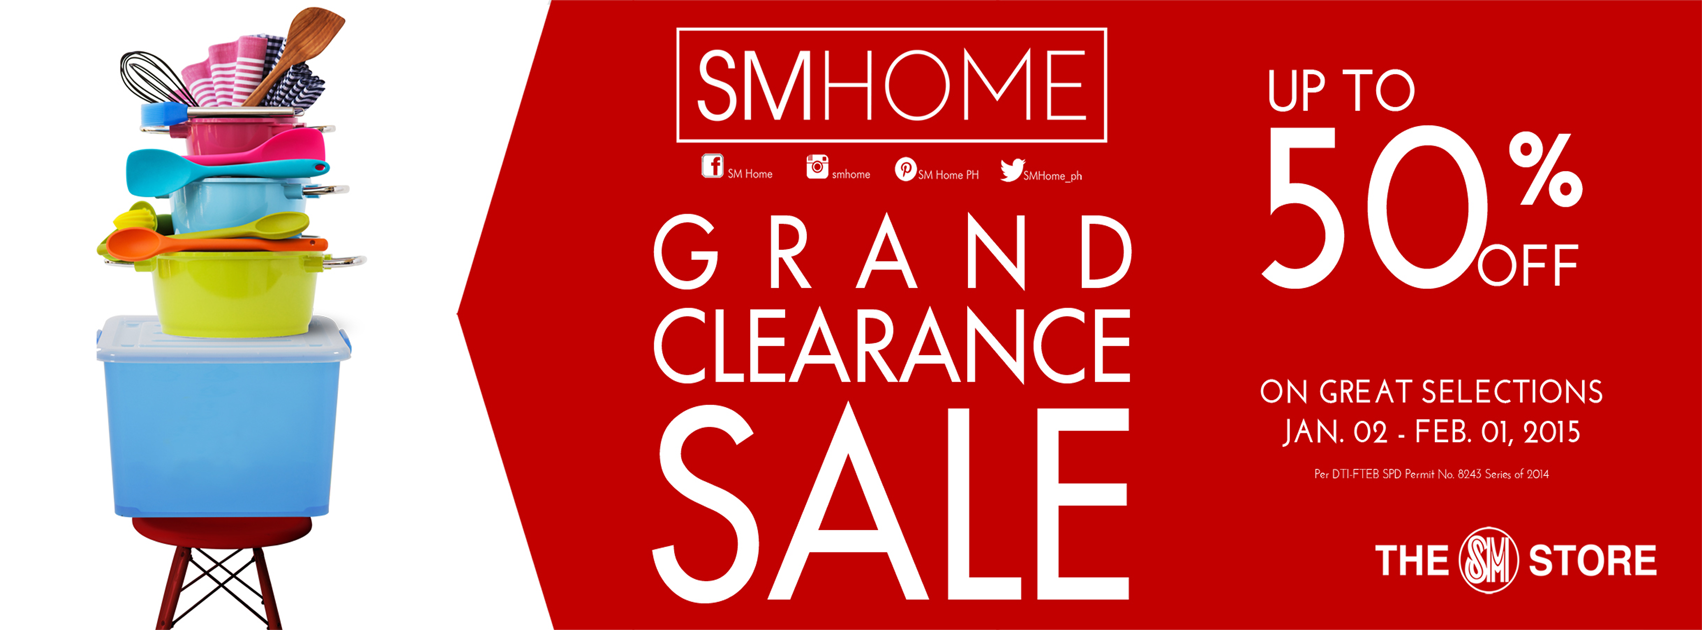 SM Home Grand Clearance Sale January - February 2015